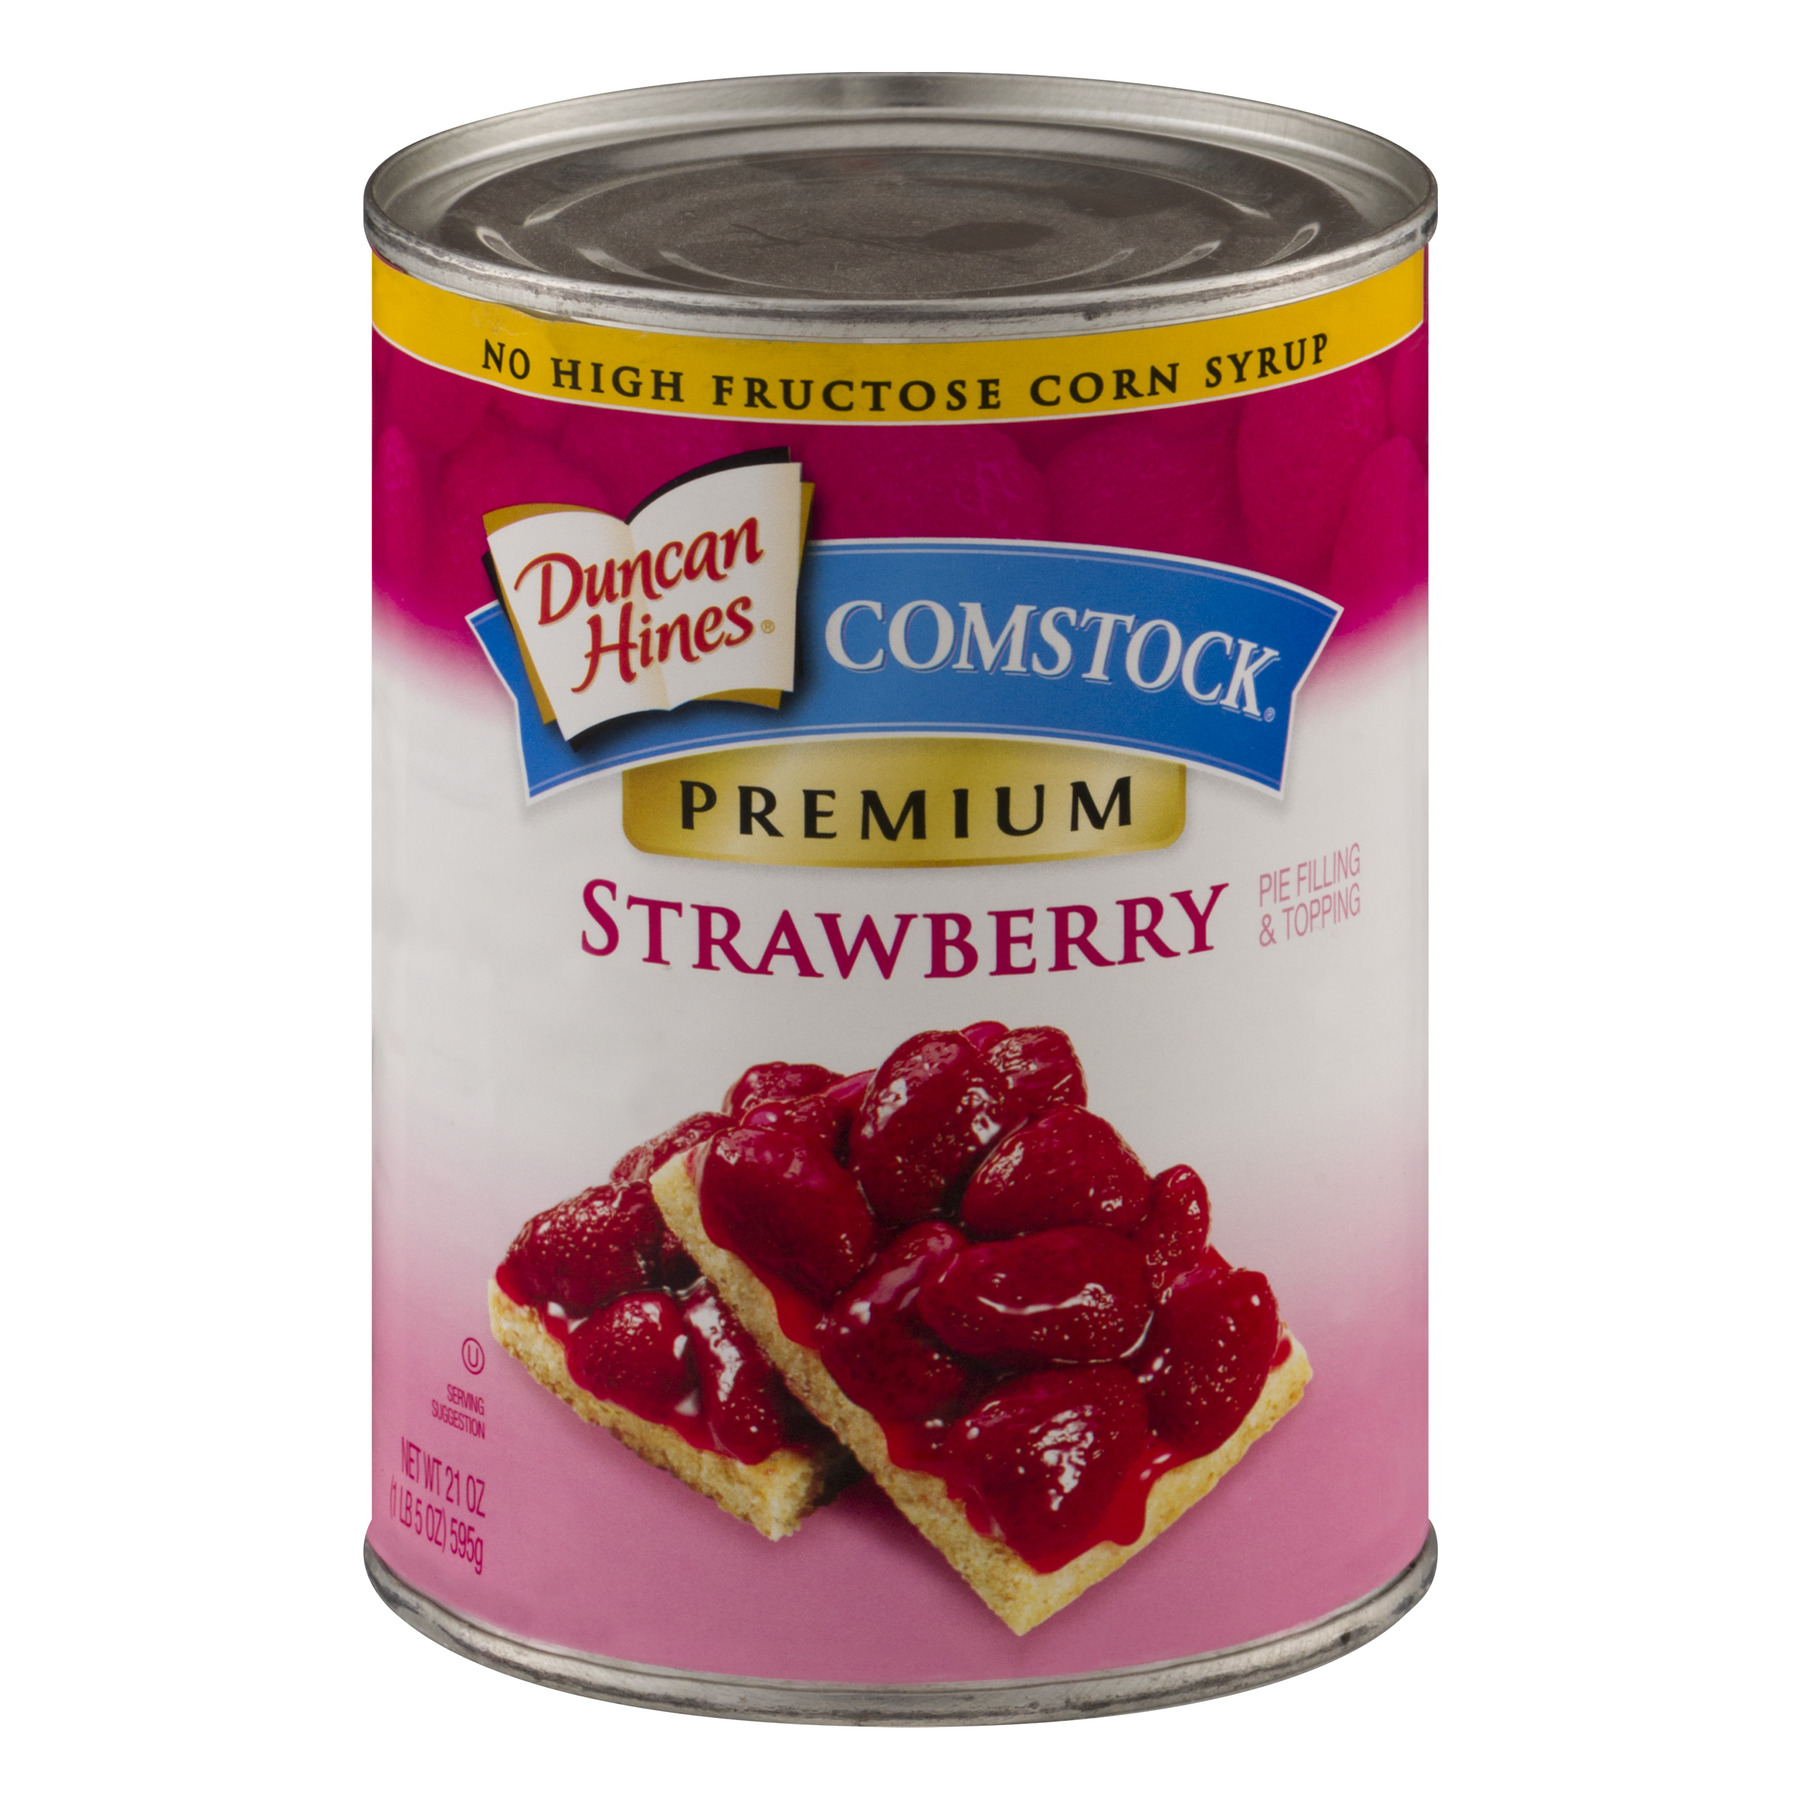 Duncan Hines Comstock Premium Strawberry Pie Filling & Topping, 21.0 OZ